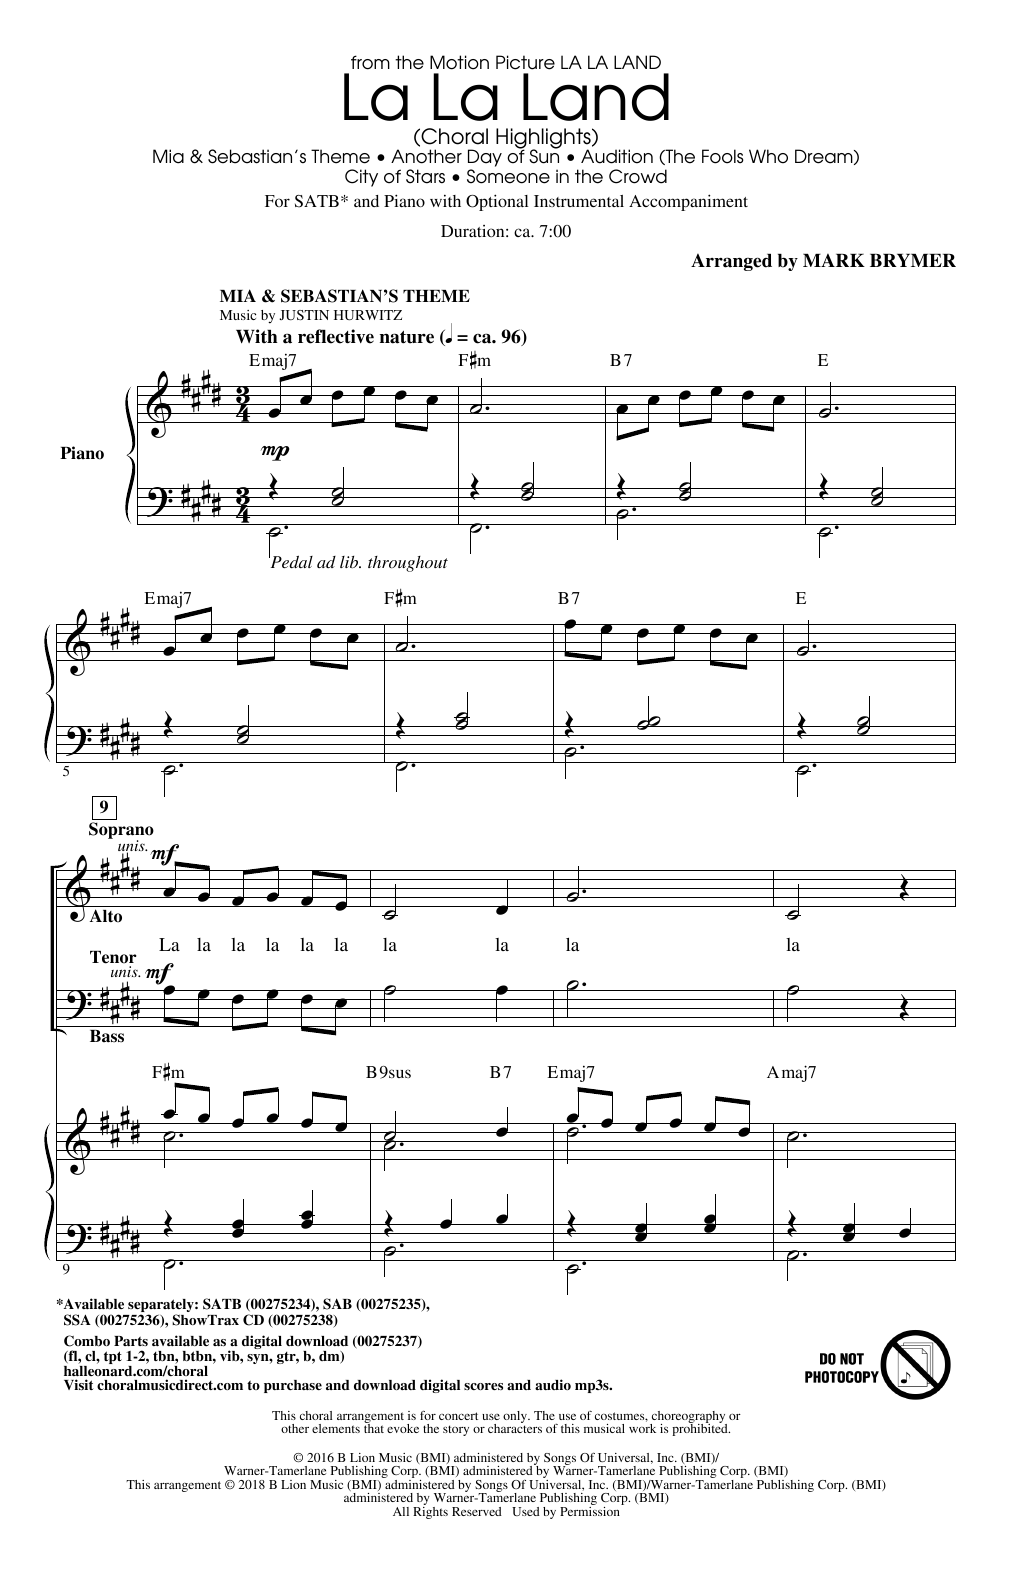 La La Land: Choral Highlights (arr. Mark Brymer) (SATB Choir)